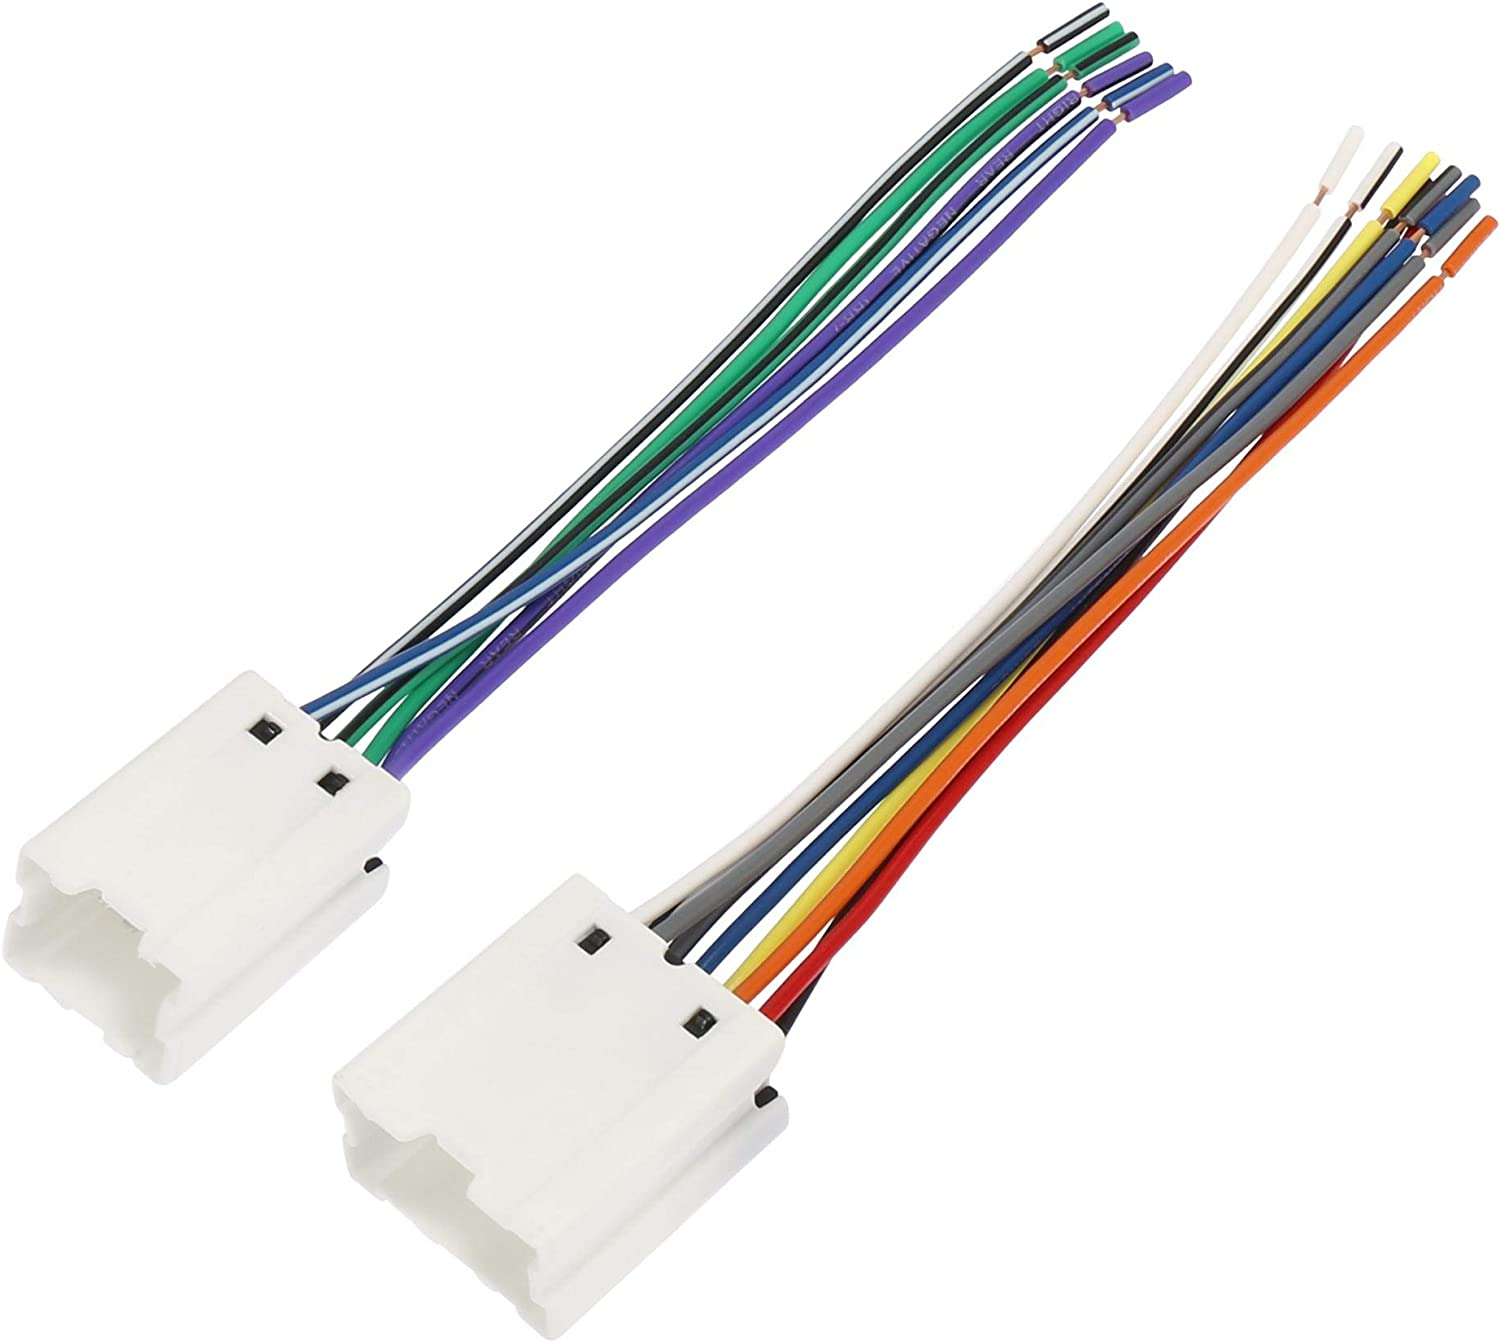 X AUTOHAUX 70-7550 Car Stereo CD Harness Set Wire Wiring Player Ranking TOP10 Award